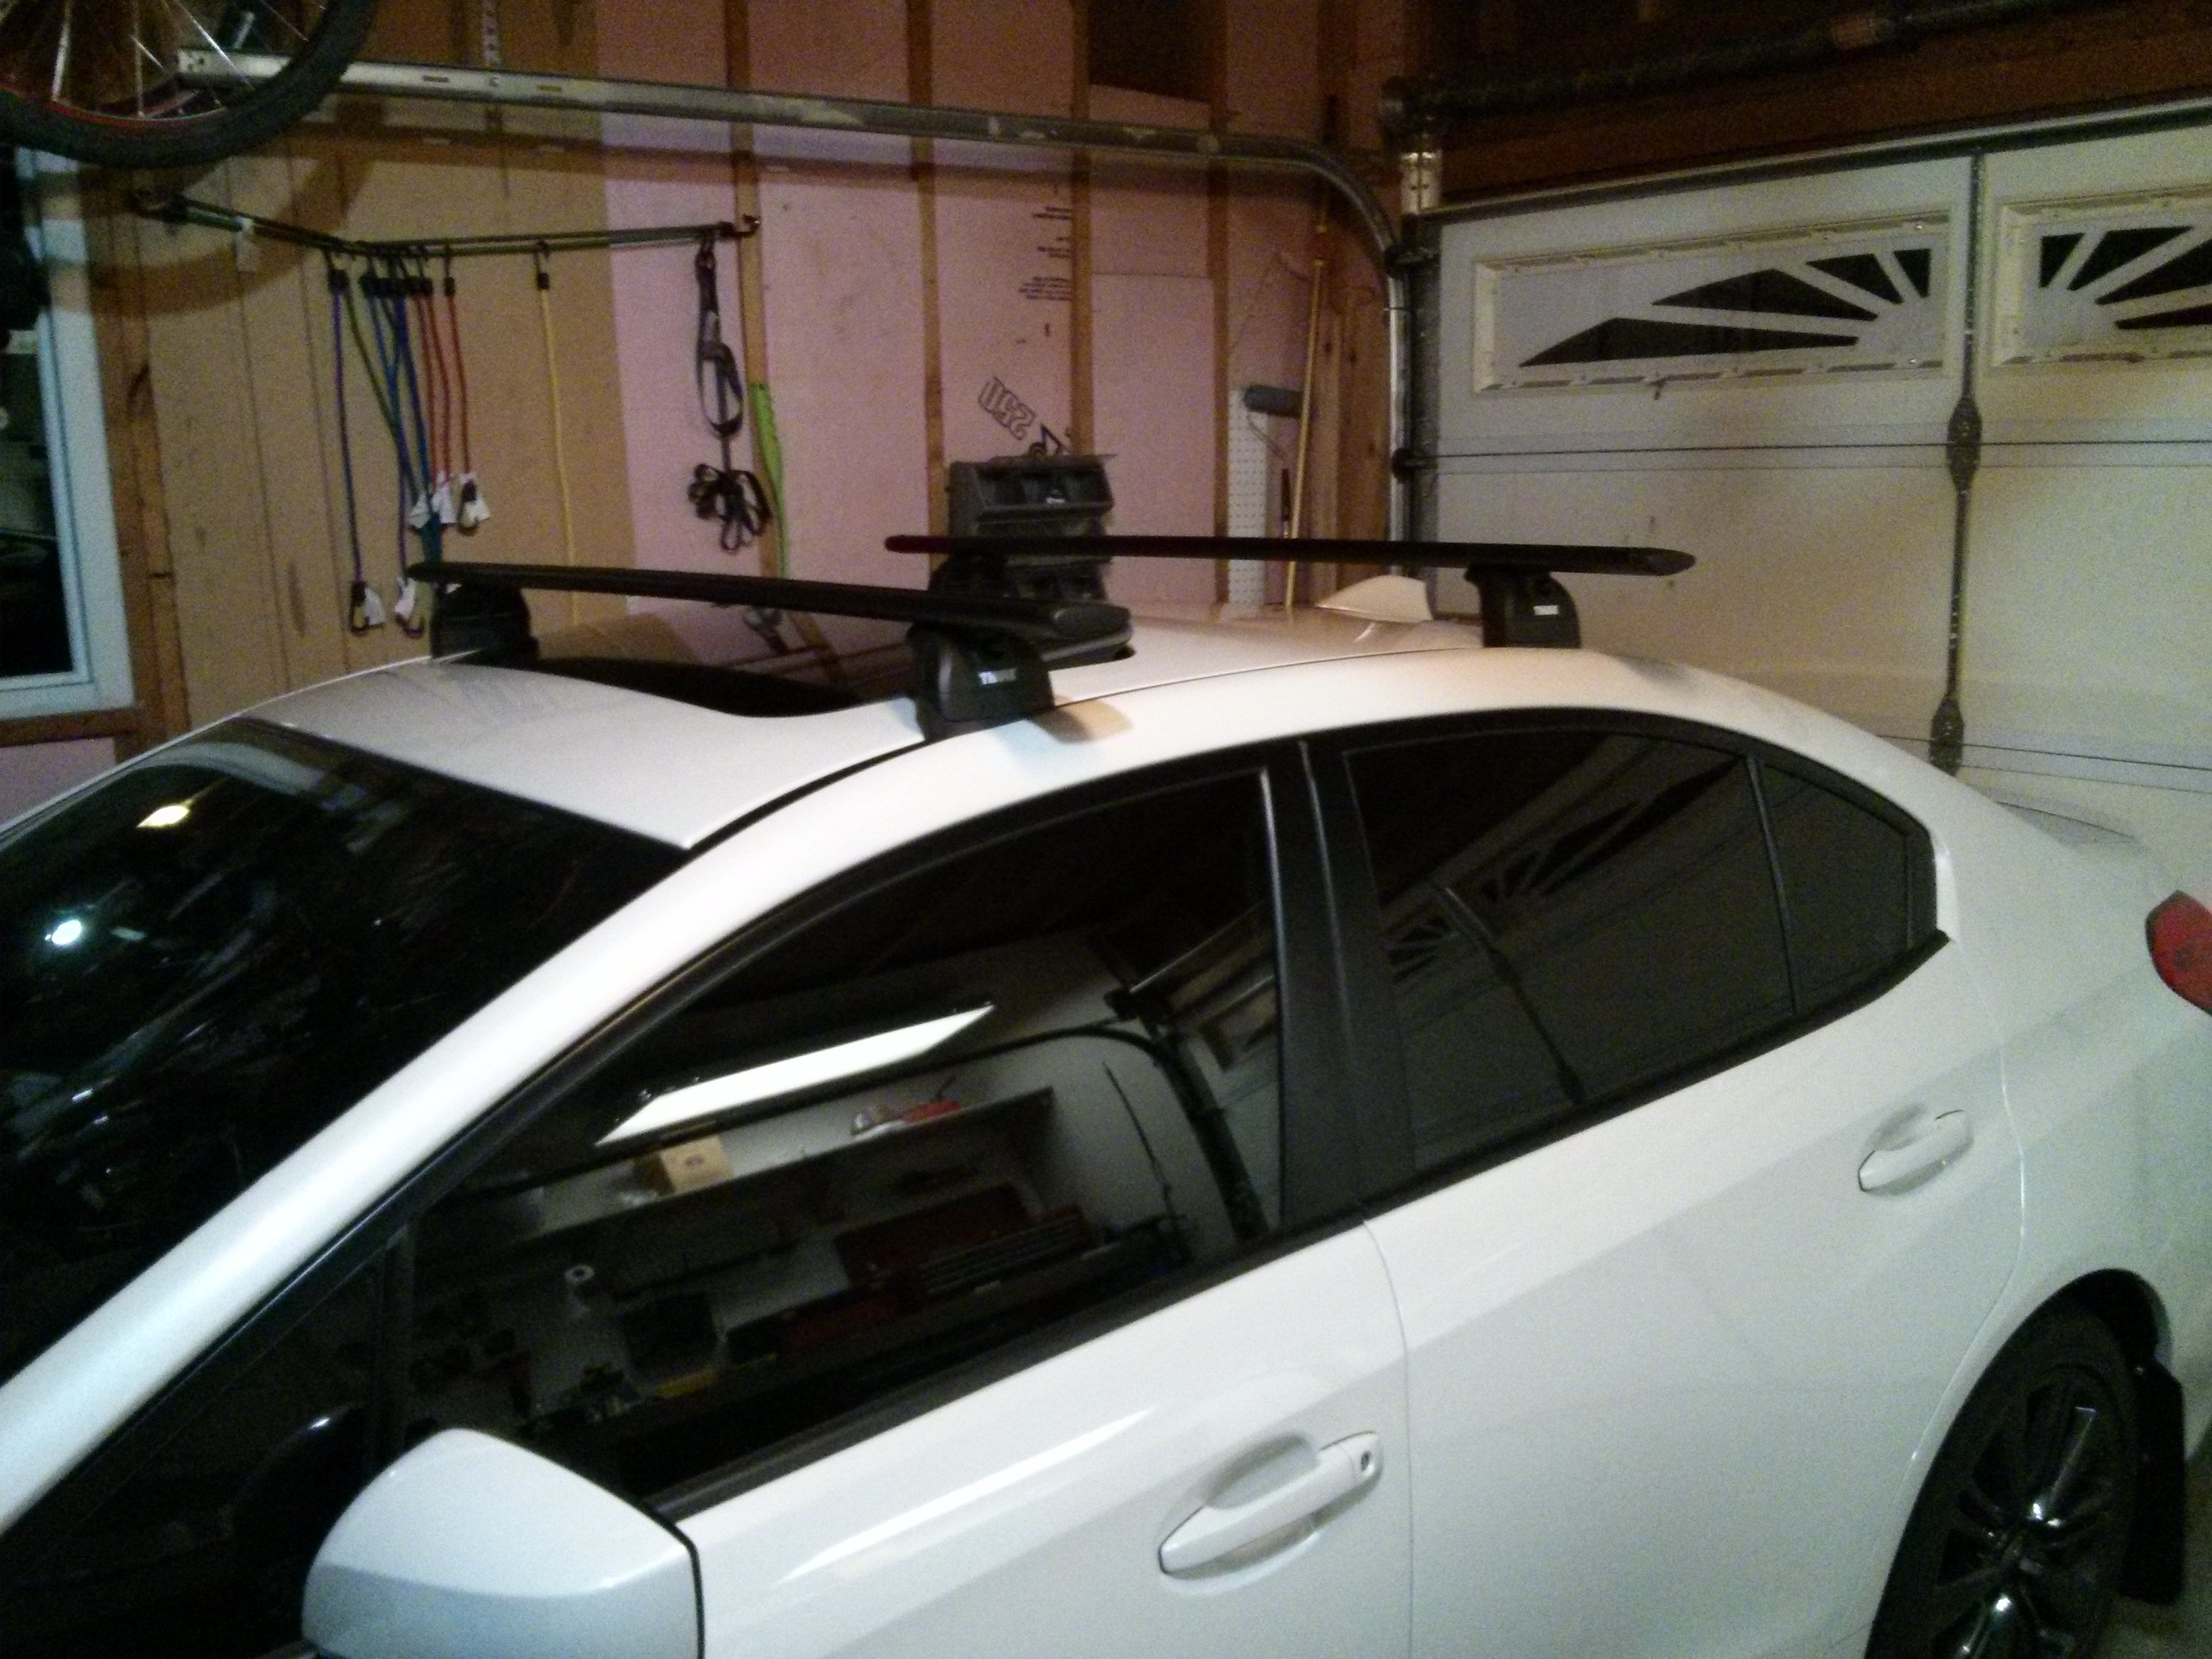 15 Wrx Roof Rack >> 15 WRX factory roof rack mount installed, yea I drilled it ! - Page 10 - NASIOC